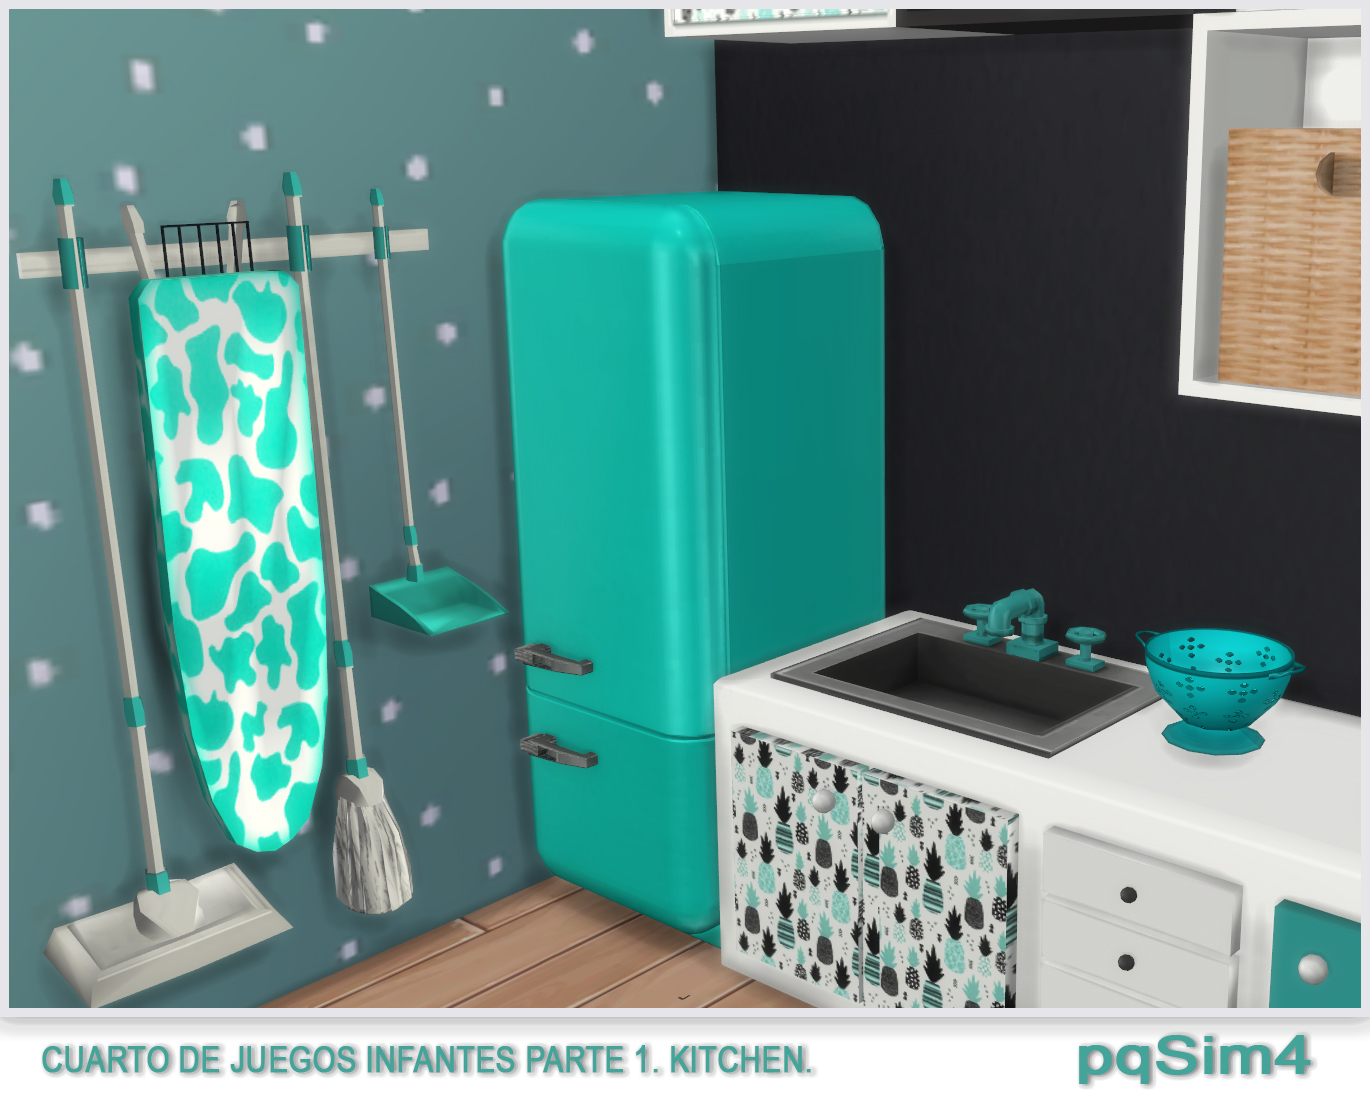 sims 4 cc's - the best: kids kitchen by pqsim4, Badezimmer ideen